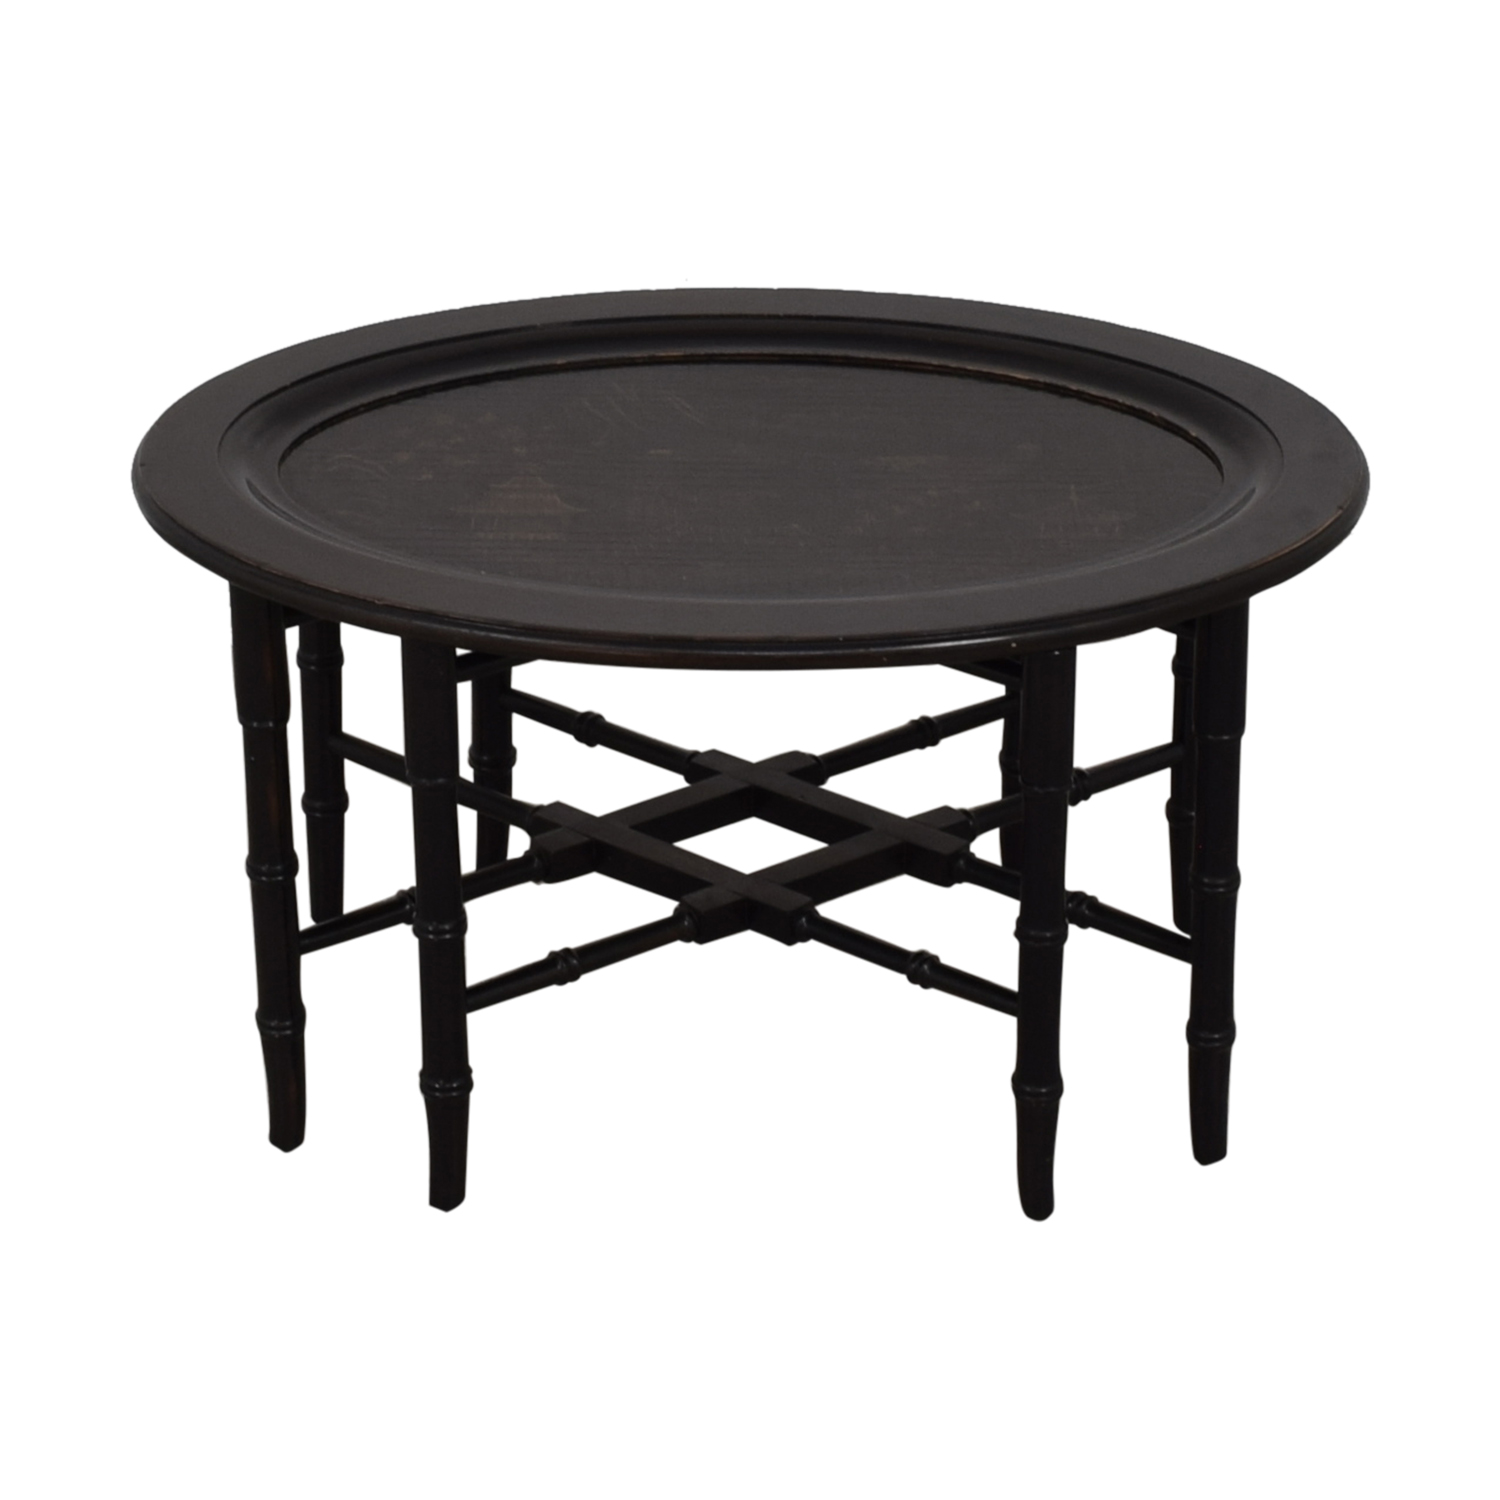 Used Ethan Allen Coffee Tables: Ethan Allen Ethan Allen Chinoiserie Oval Tray